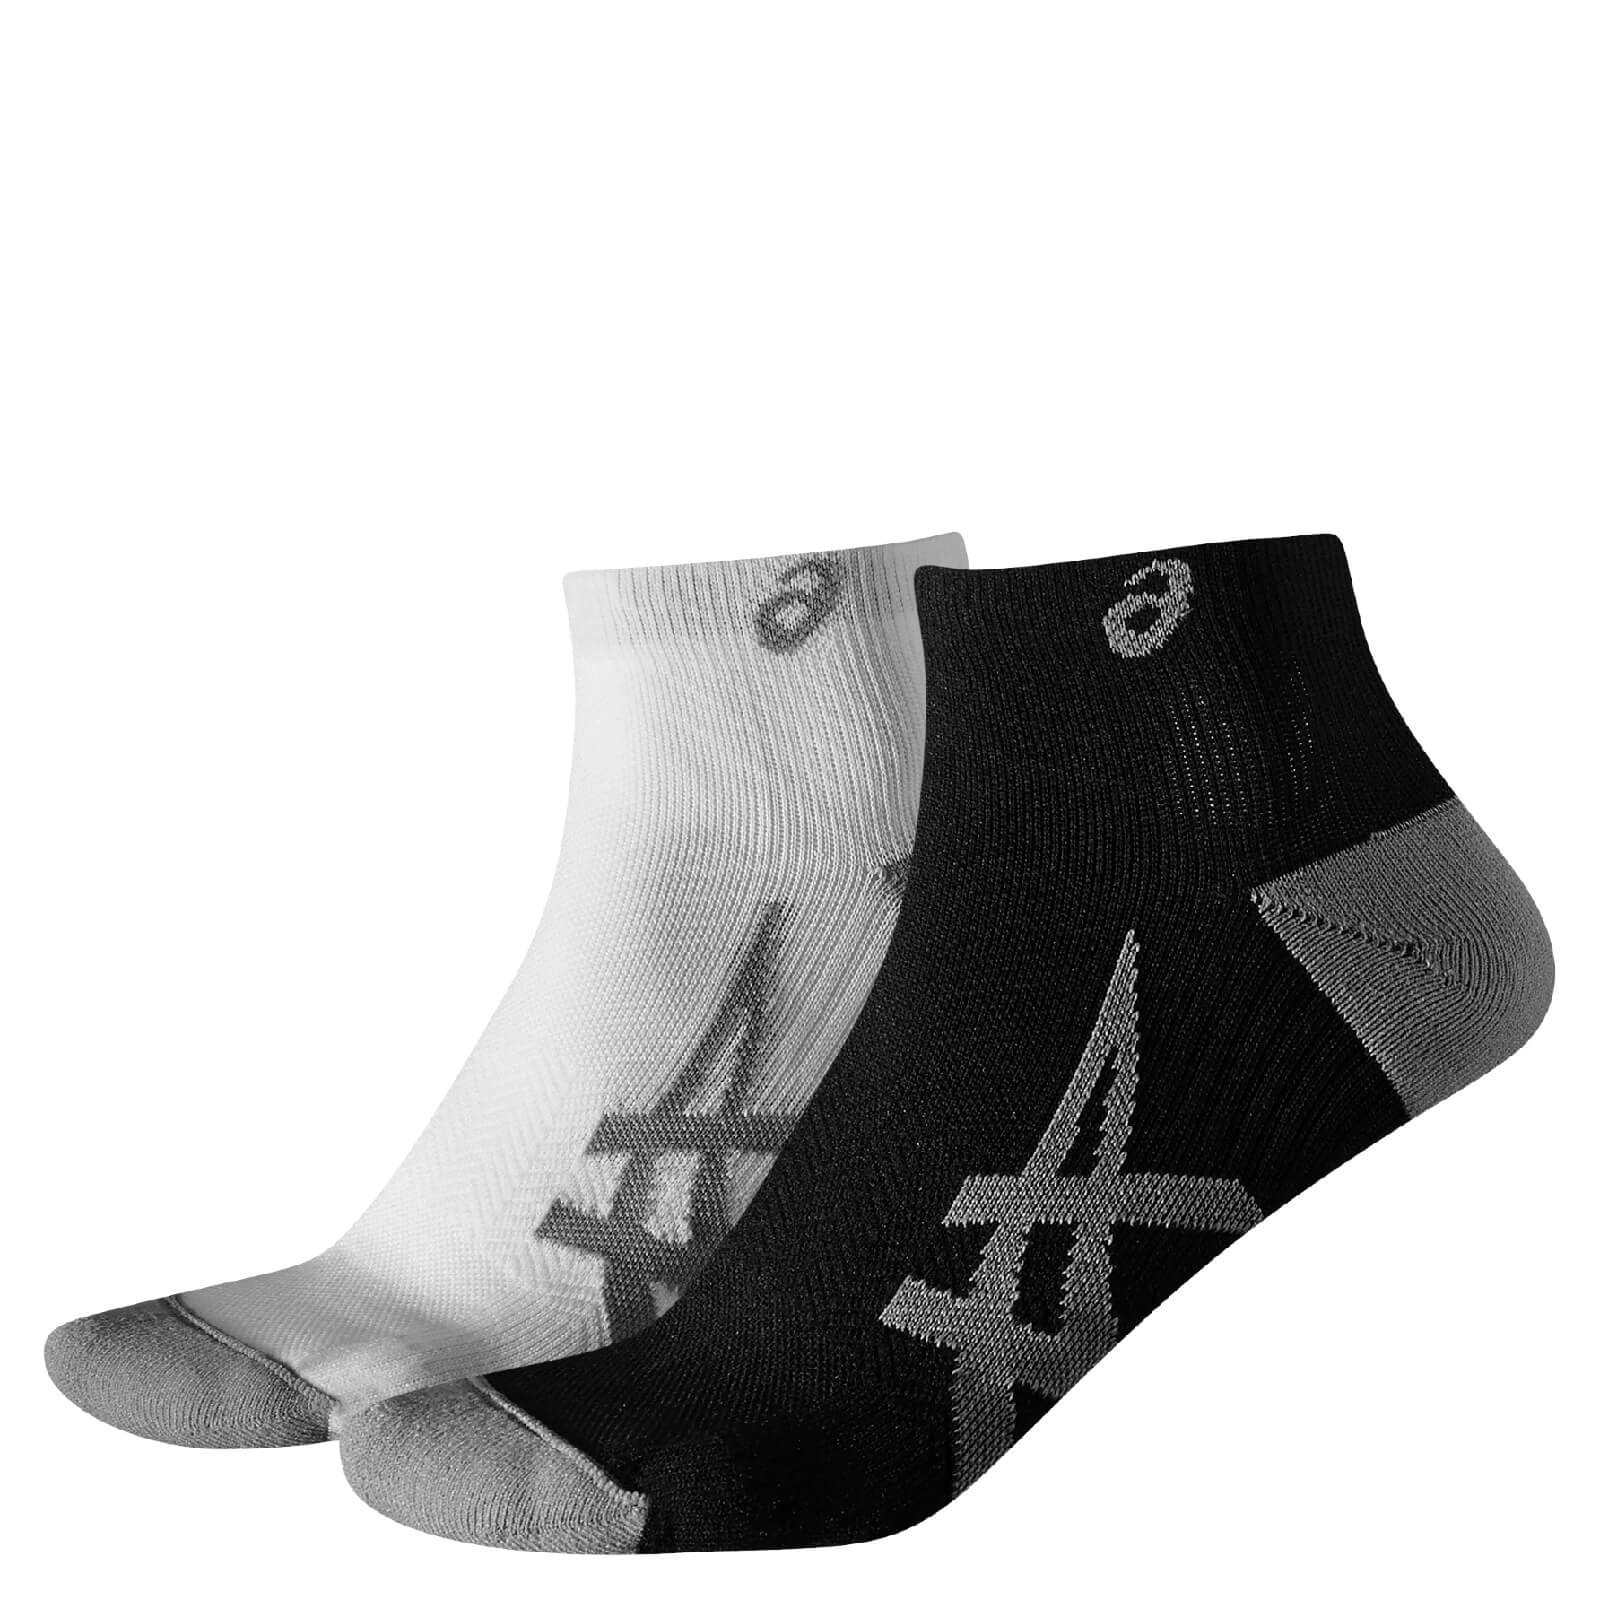 mens running socks asics